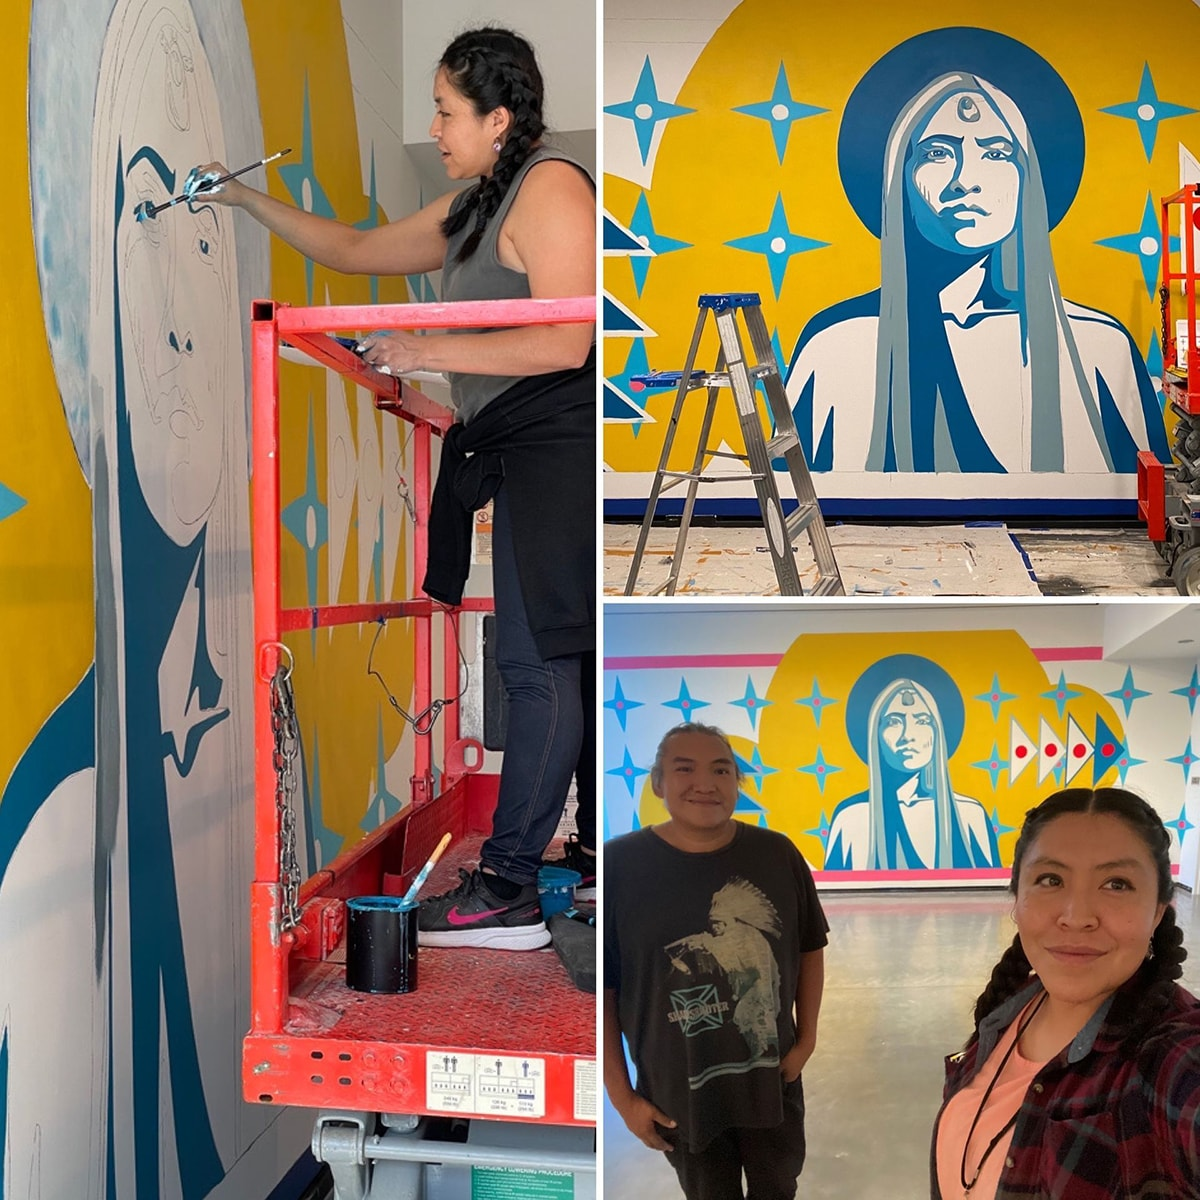 Image descriptions, clockwise from left: 1. A collage of three photos showing the artist Lynette Haozous and her assistant, Andrew Benally working on a mural. The first photo takes up the space on the left and features Haozous standing on a motorized lift painting the eye of a partially painted figure on the museum wall. Haozous stands on the red lift facing left, her right hand holding a brush touching the wall. Haozous is a Native American woman with dark hair swept back into two braids. She wears a gray sleeveless top and jeans with a dark shirt tied around her waist and black sneakers. A pot of blue paint sits at her feet. The mural taking shape on the wall portrays the head and shoulders of a larger-than-life figure with long hair in blue and gray. The figure is set against a bright yellow background with a halo-like shape around the head. Light blue four, pointed stars with white circle in their centers surround the figure. Two more photos are stacked on the right. 2. The top features the mural in progress with a table, ladder, and motorized lift in front of it. The mural's central figure is the head and shoulders of a figure with long straight hair rendered in blues and grays. The figure gazes directly ahead, with facial features and clothing rendered in light blues on white. A darker blue halo is around the head within a much larger bright yellow organic cloud-like shape. Layered over this are light blue four-pointed stars in rows on either side of the figure. To the left of the figure, four dark blue, pyramid shaped triangles outlined in white are stacked on top of one another. The top and bottom triangles have large white dots in their centers and the middle two have red dots. To the right of the figure are four more pyramid shaped triangles, this time with red center dots and standing on their sides. The floor beneath the mural is covered with drop cloths. 3. The final photo at bottom right shows the artist and her assistant in the foreground with the com